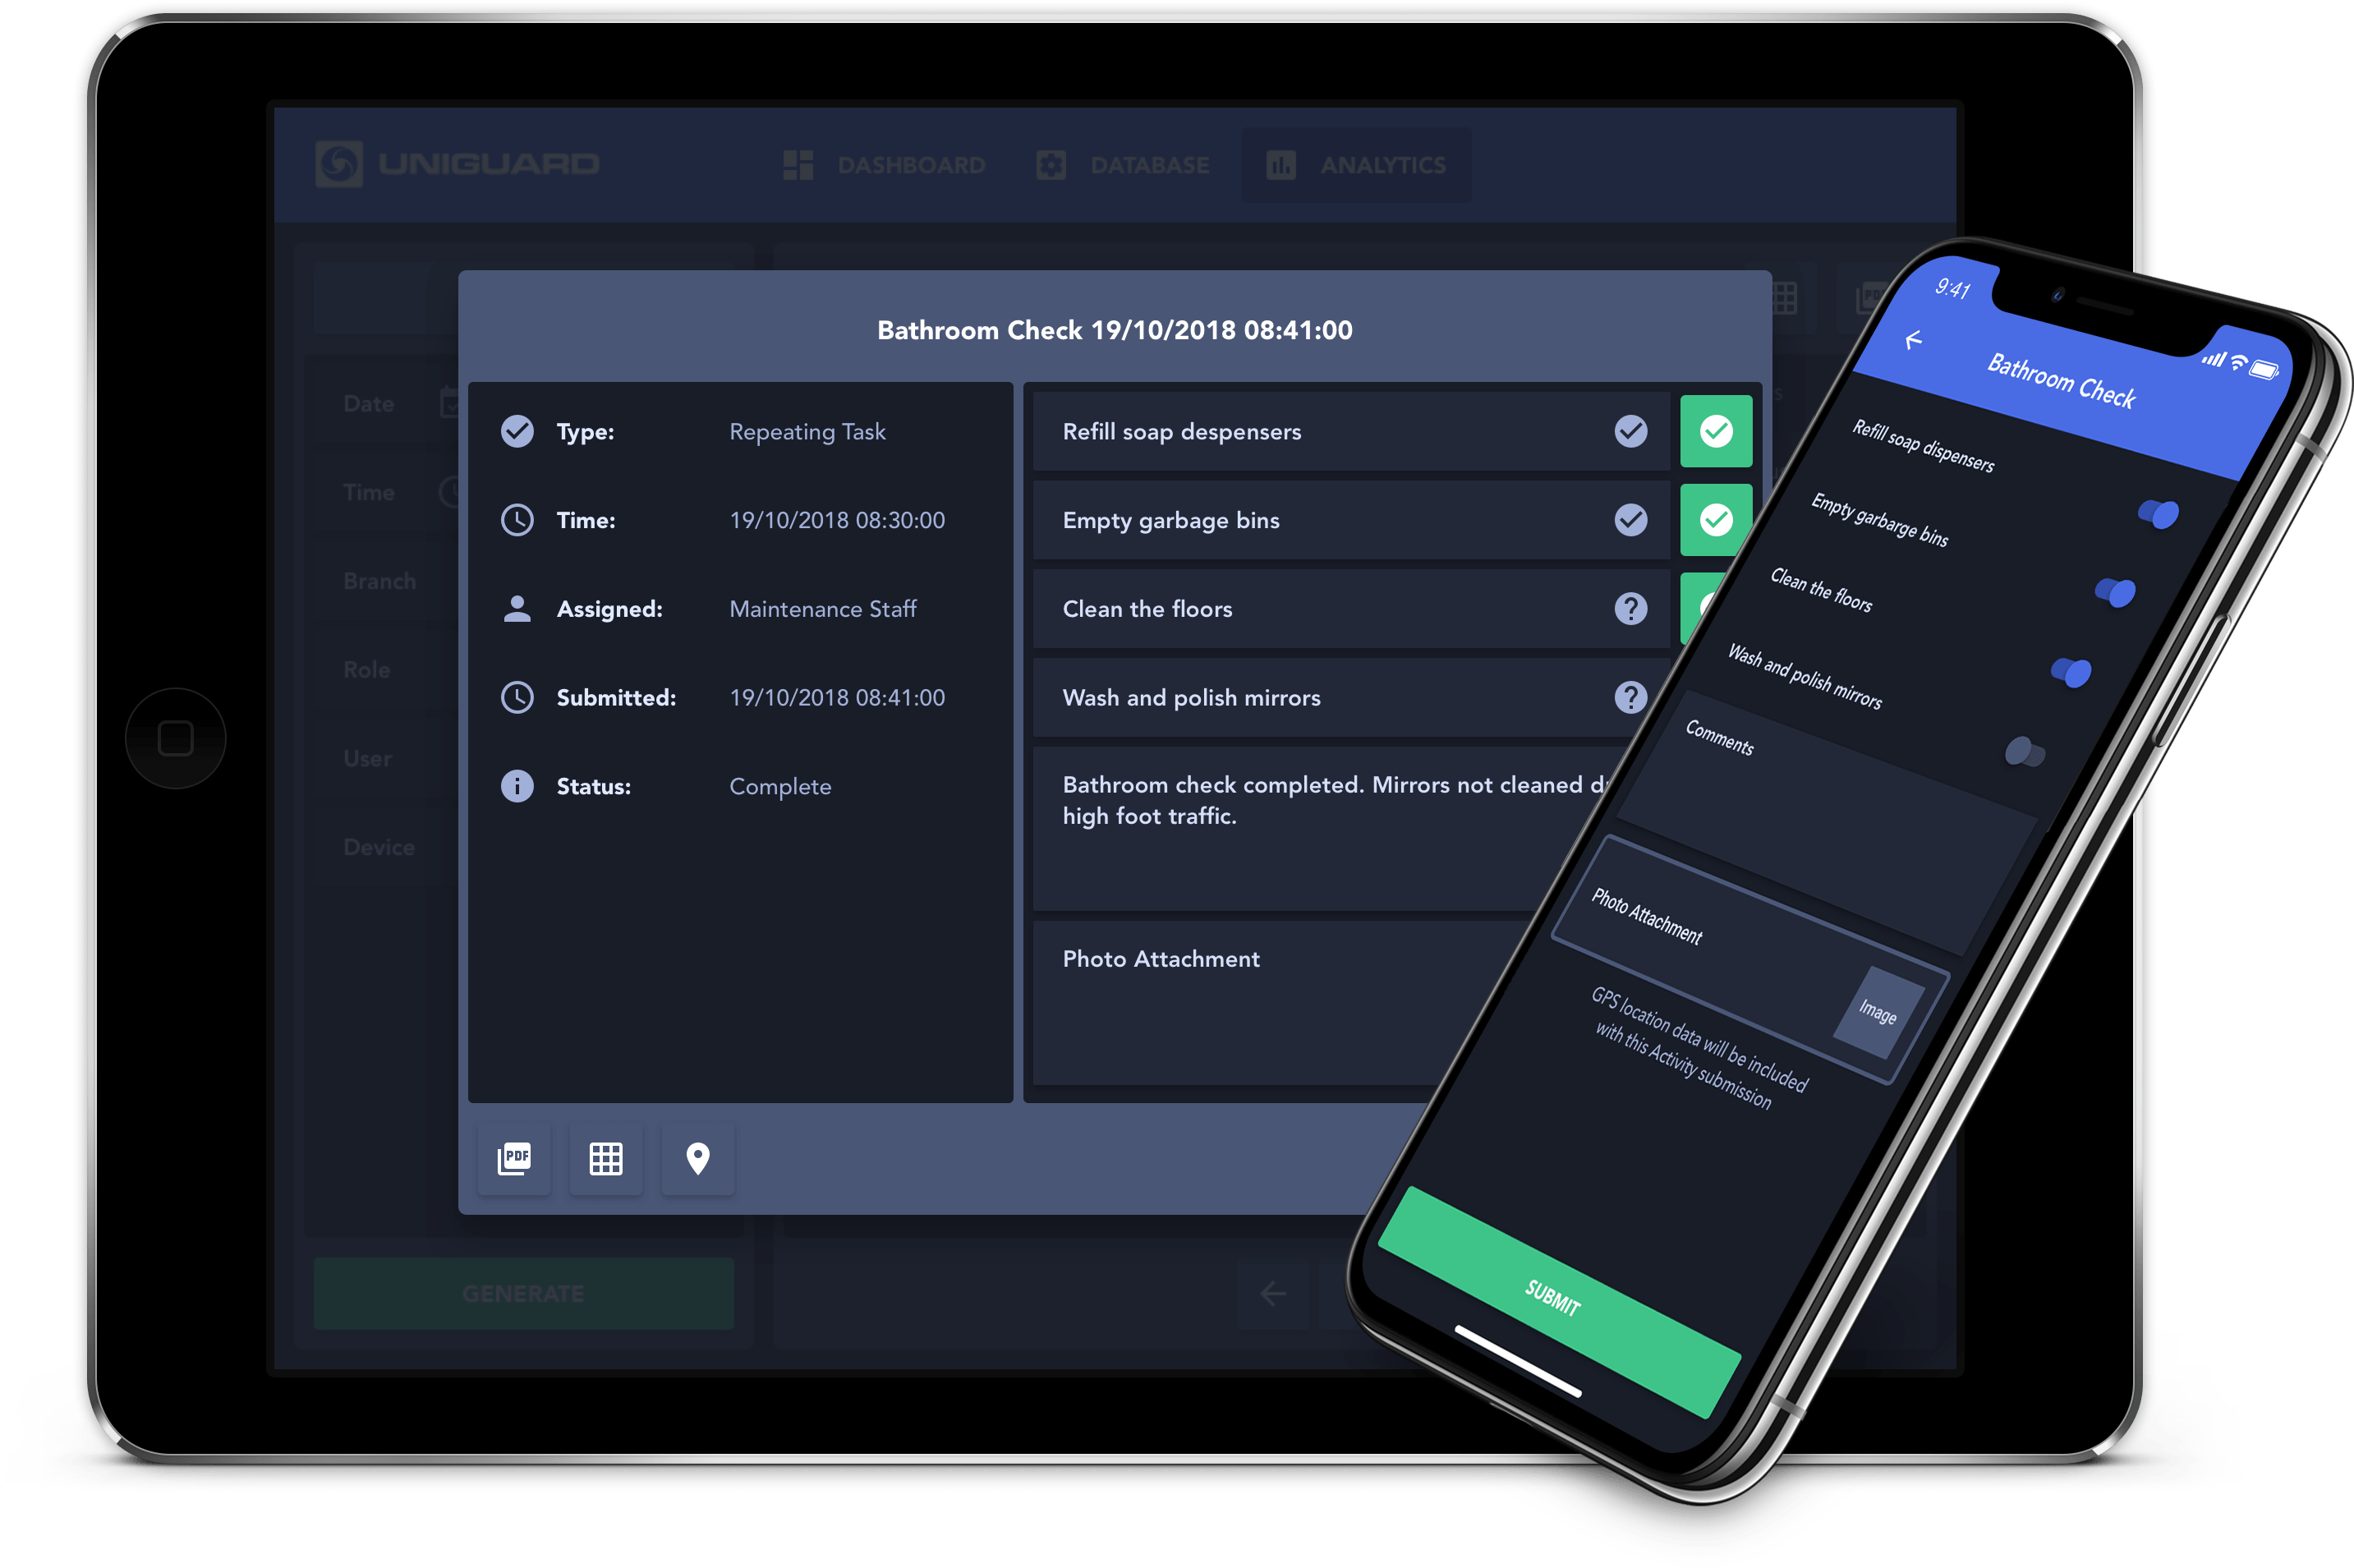 UniGuard Web Dashboard Tasks & Mobile App